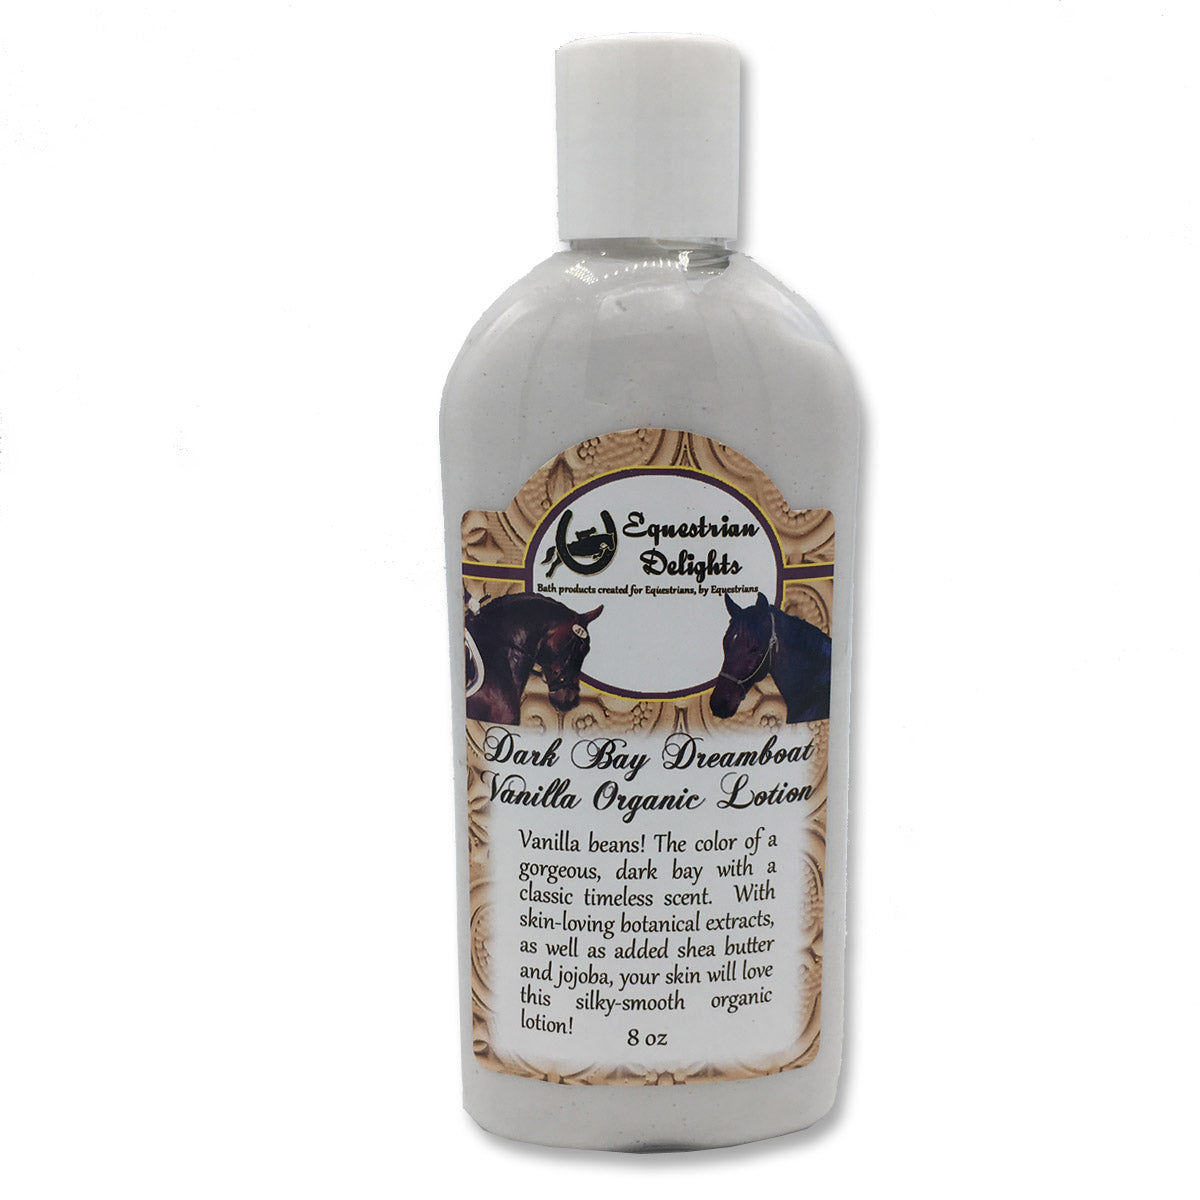 Dark Bay Dreamboat Vanilla Organic Lotion